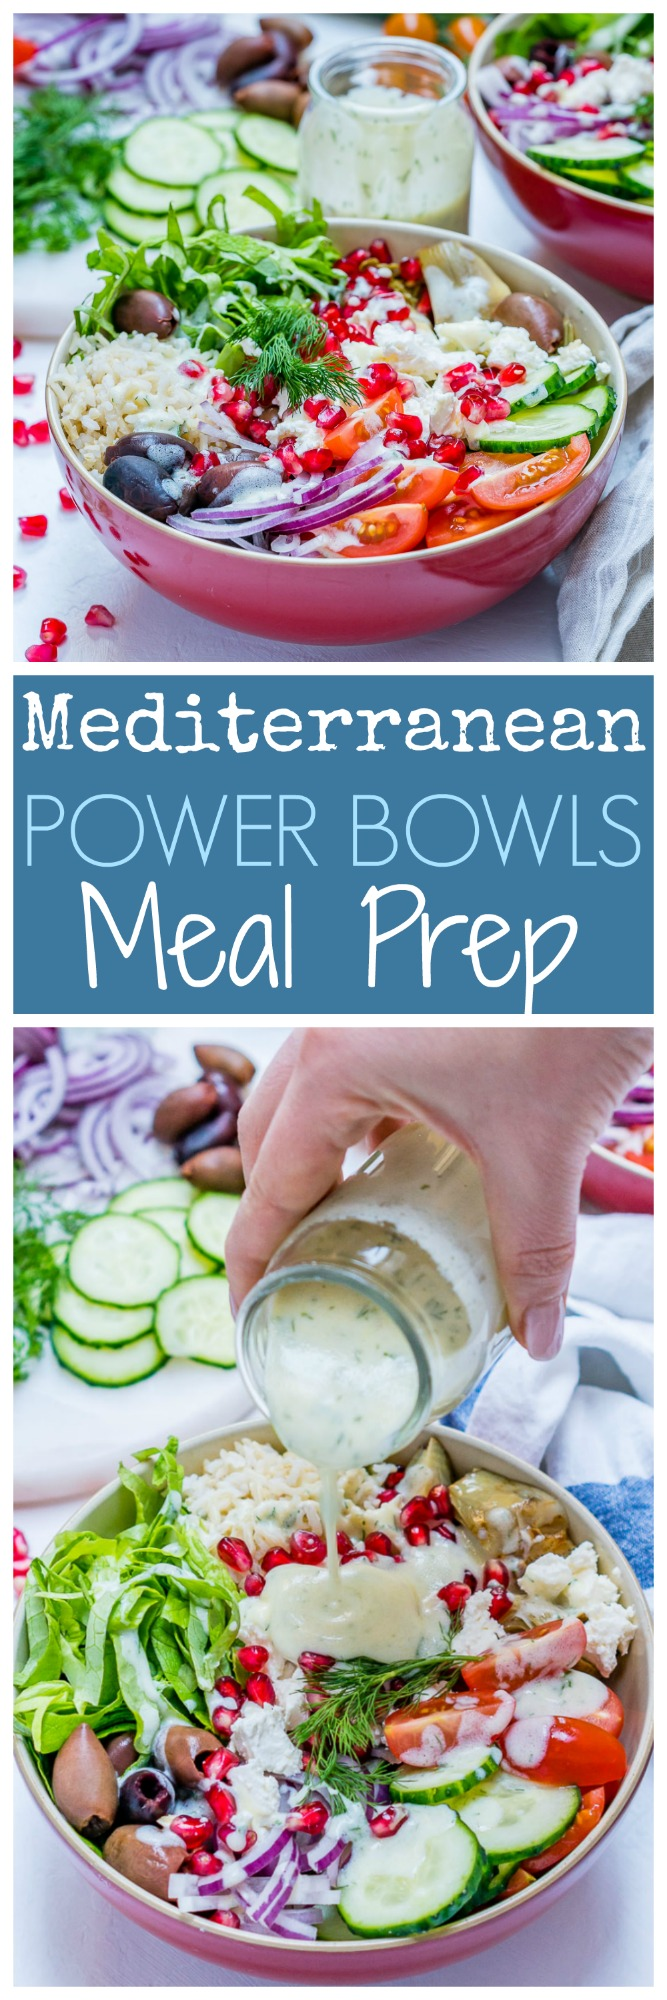 Mediterranean-Green Power Bowls Meal Prep